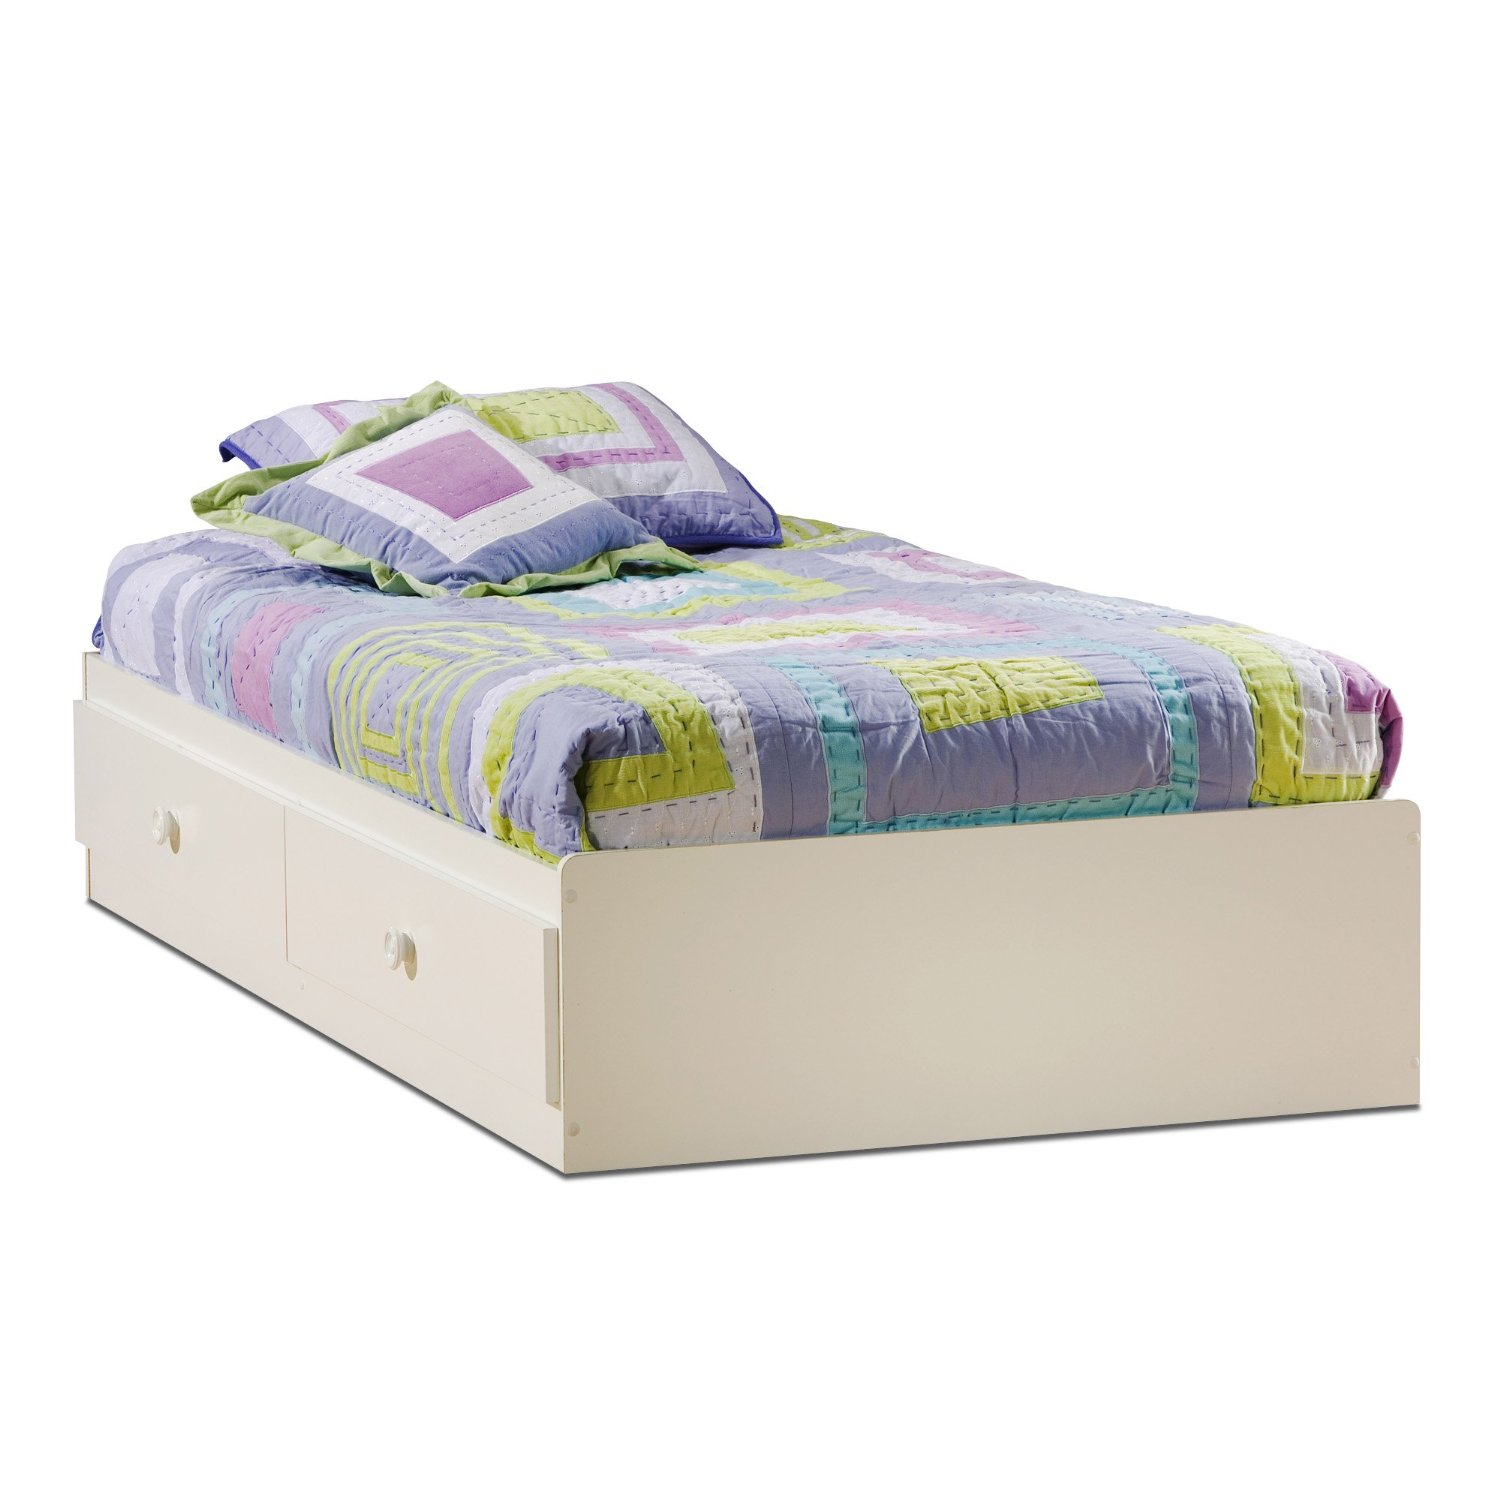 Cheap twin bed frames with mattress classic style queen size bed frame metal artistic shape Affordable twin mattress